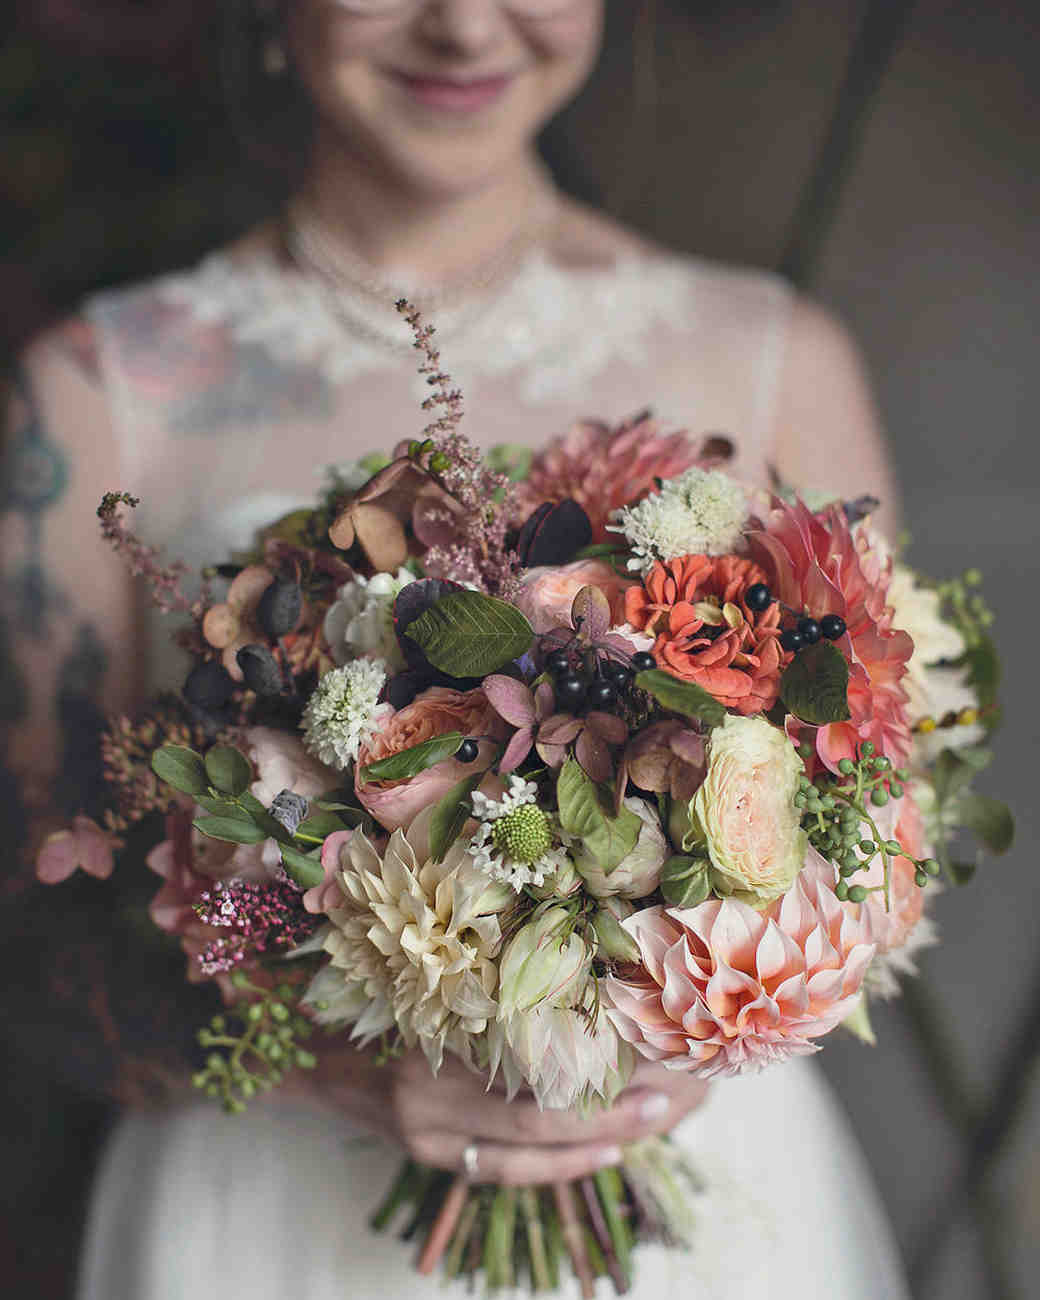 Wedding Bouquets Not Flowers: Our 20 Most-Liked Wedding Photos Of The Year On Instagram